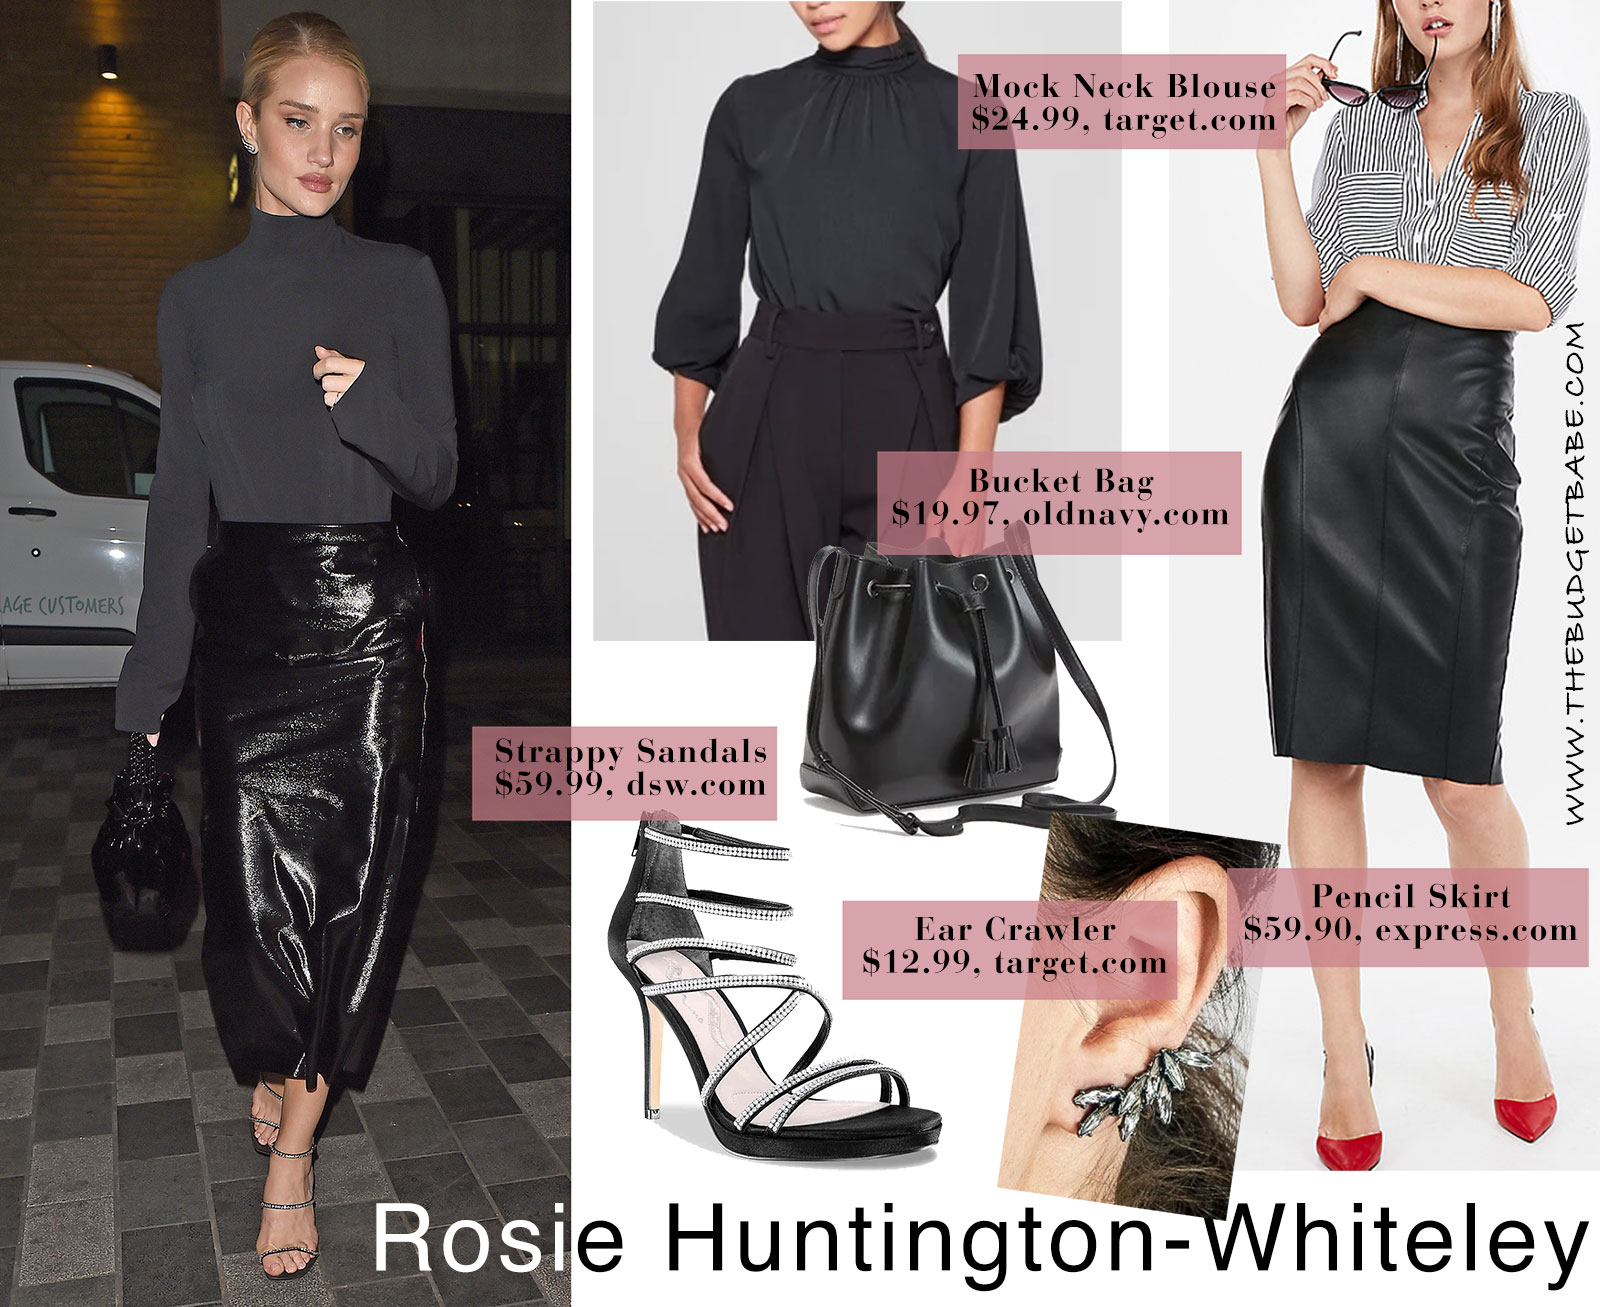 72b633edfb26 Rosie Huntington-Whiteley - The Budget Babe | Affordable Fashion ...